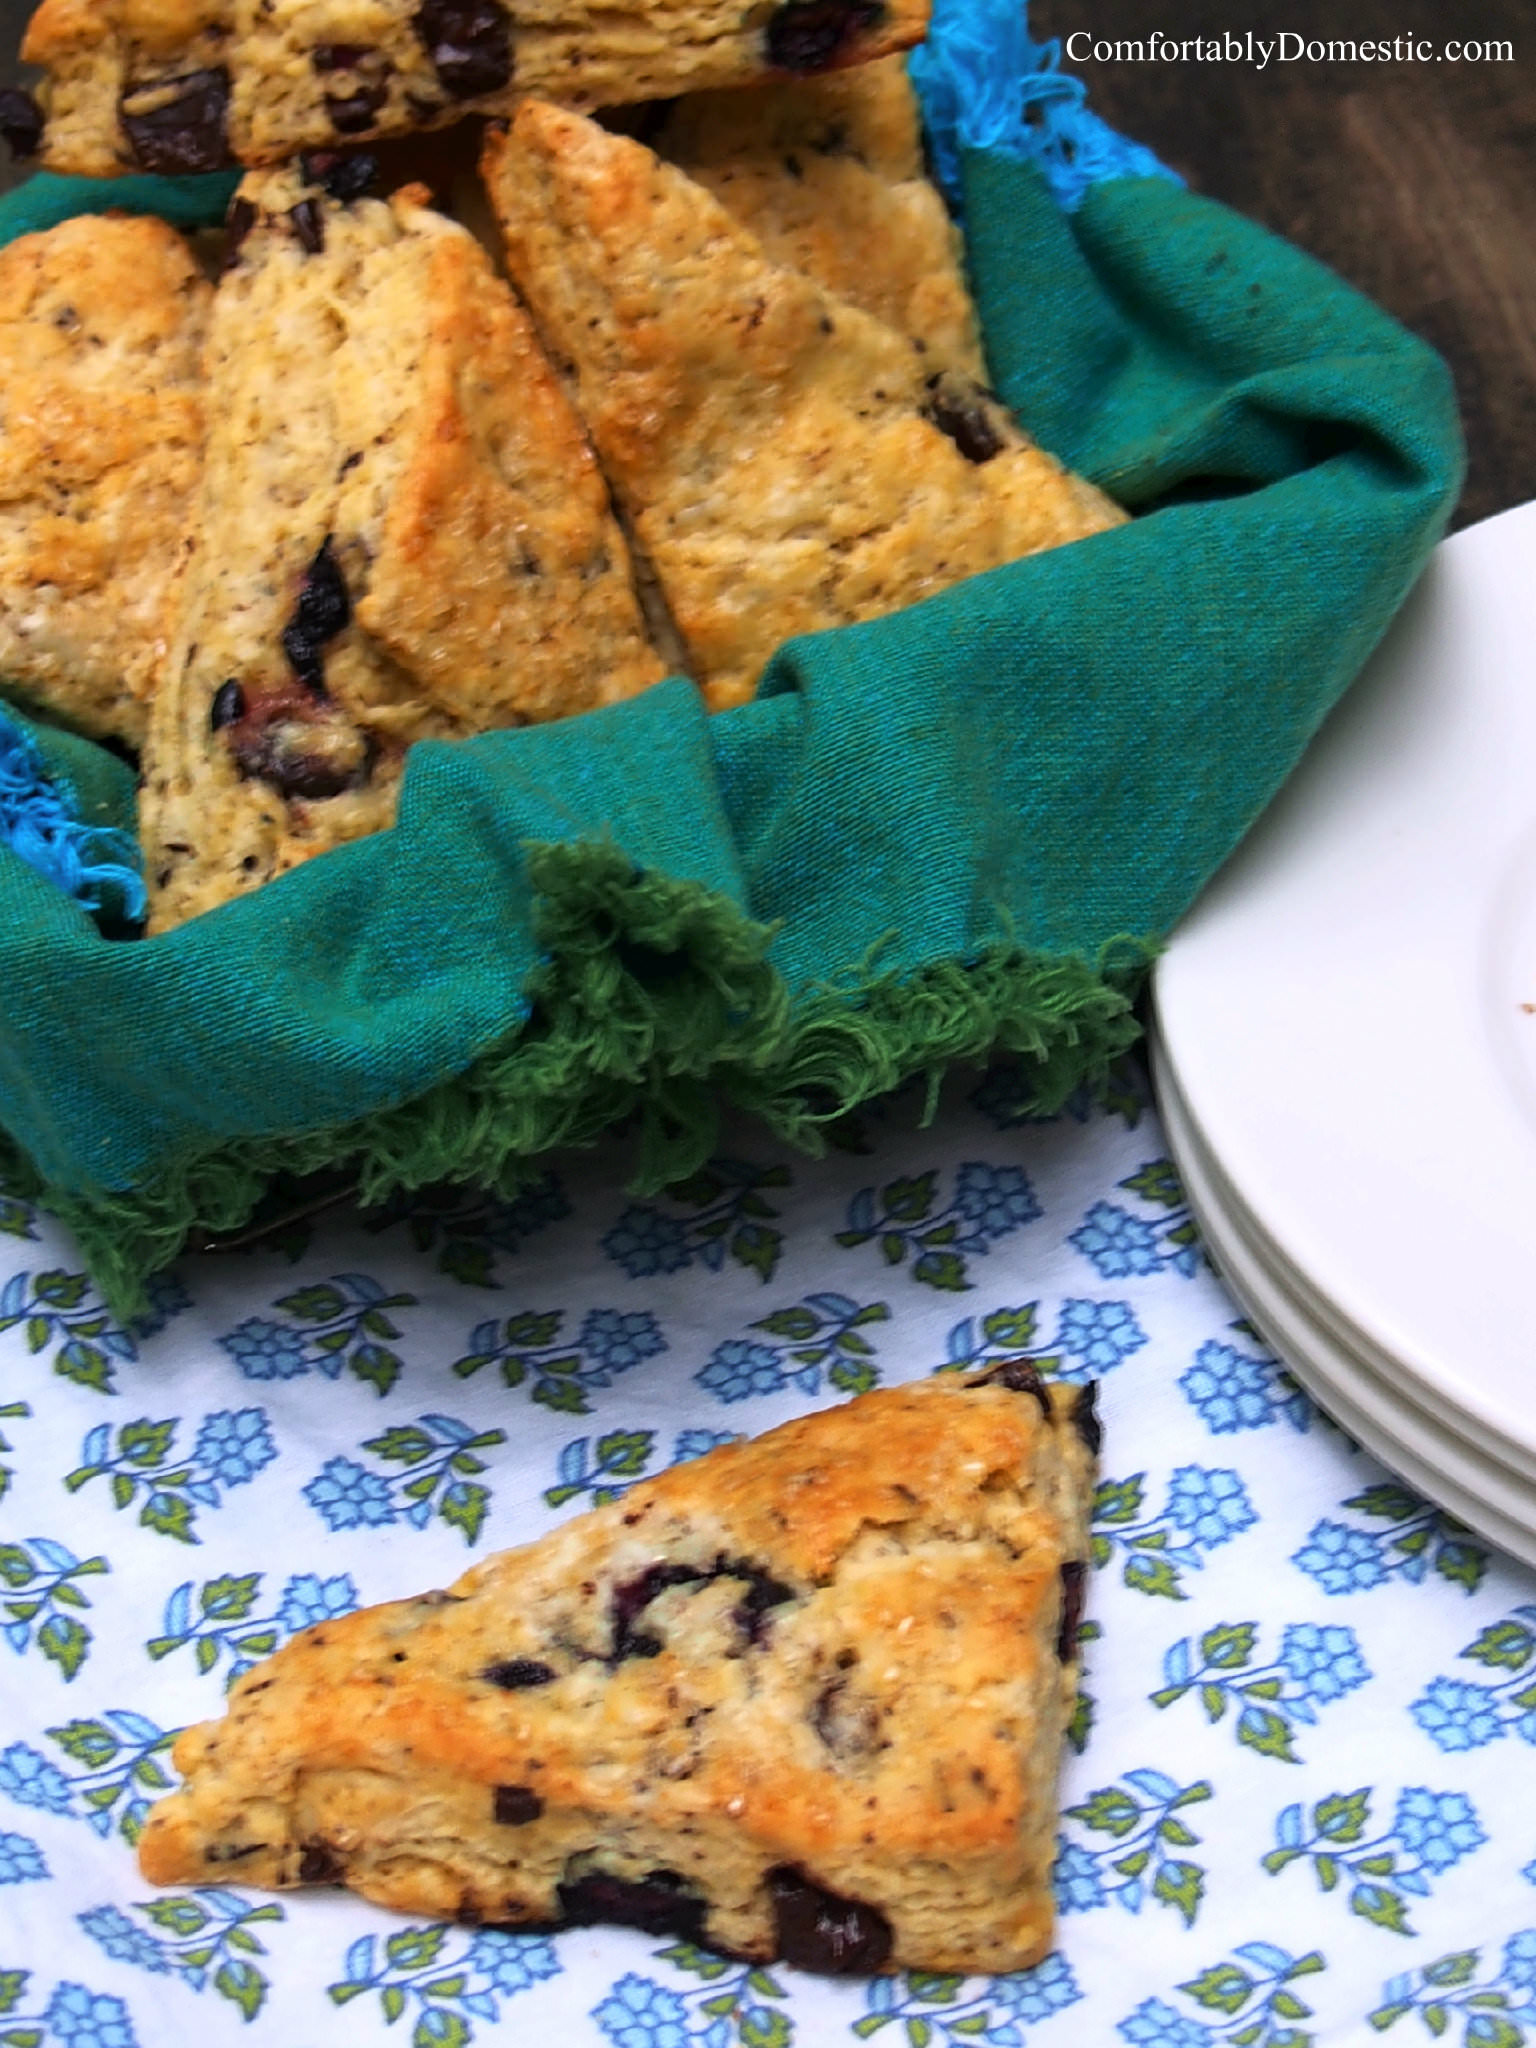 Blueberry scones with dark chocolate are fluffy, buttery breakfast scones, bursting with blueberries and rich chunks of dark chocolate. | ComfortablyDomestic.com